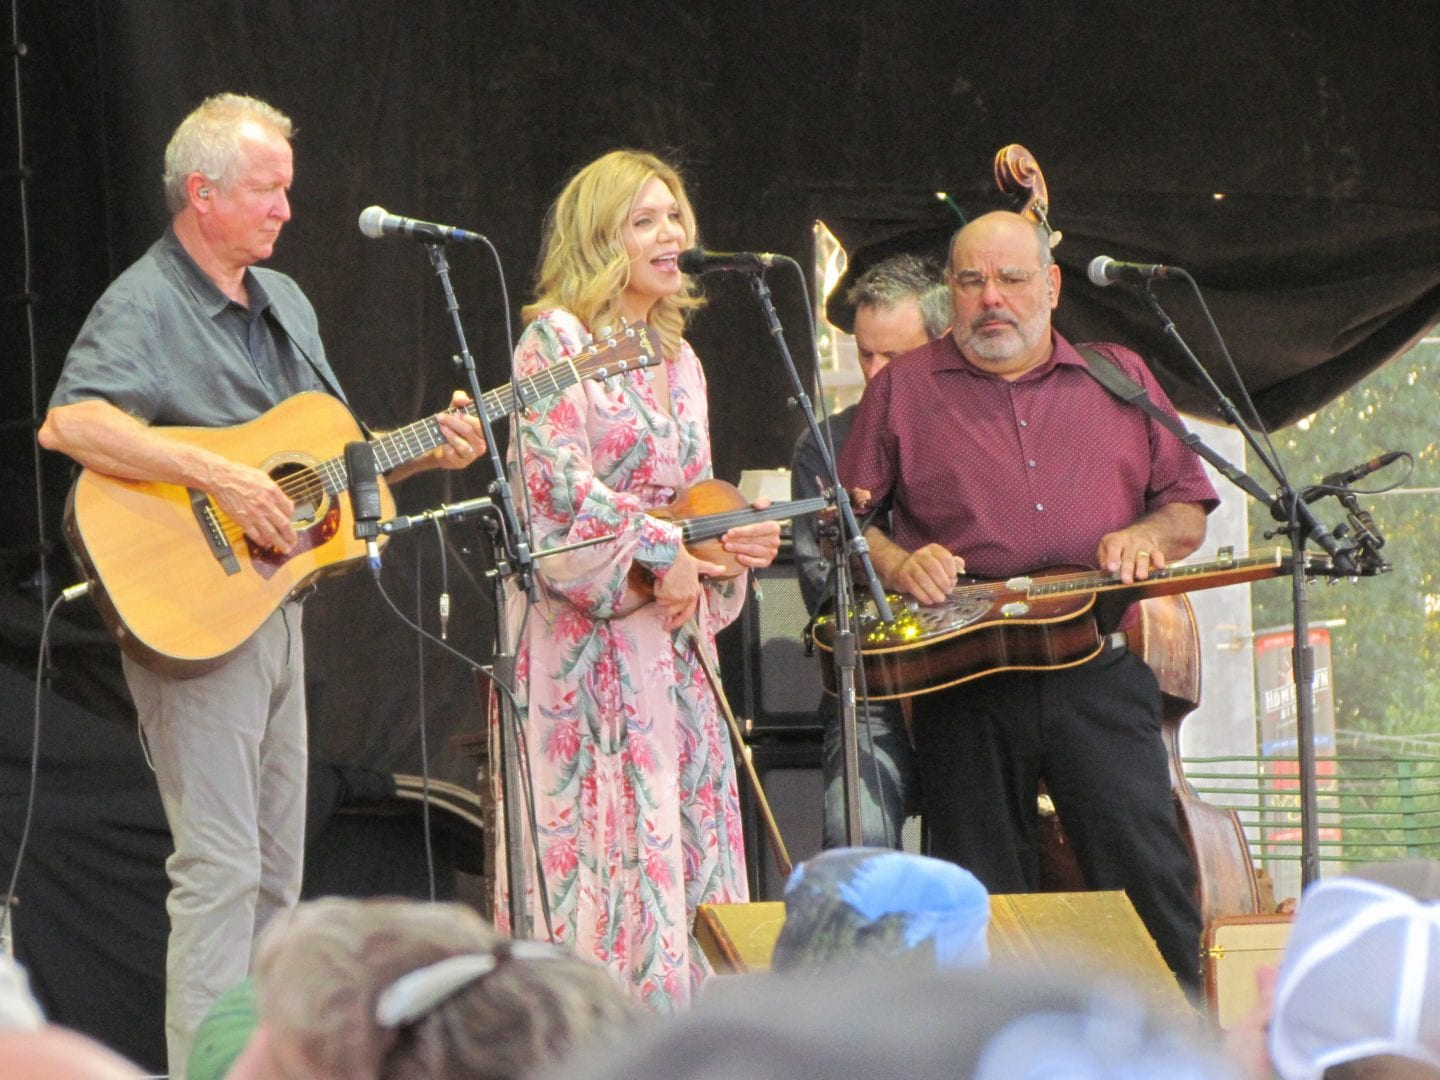 Alison Krauss playing music with her band